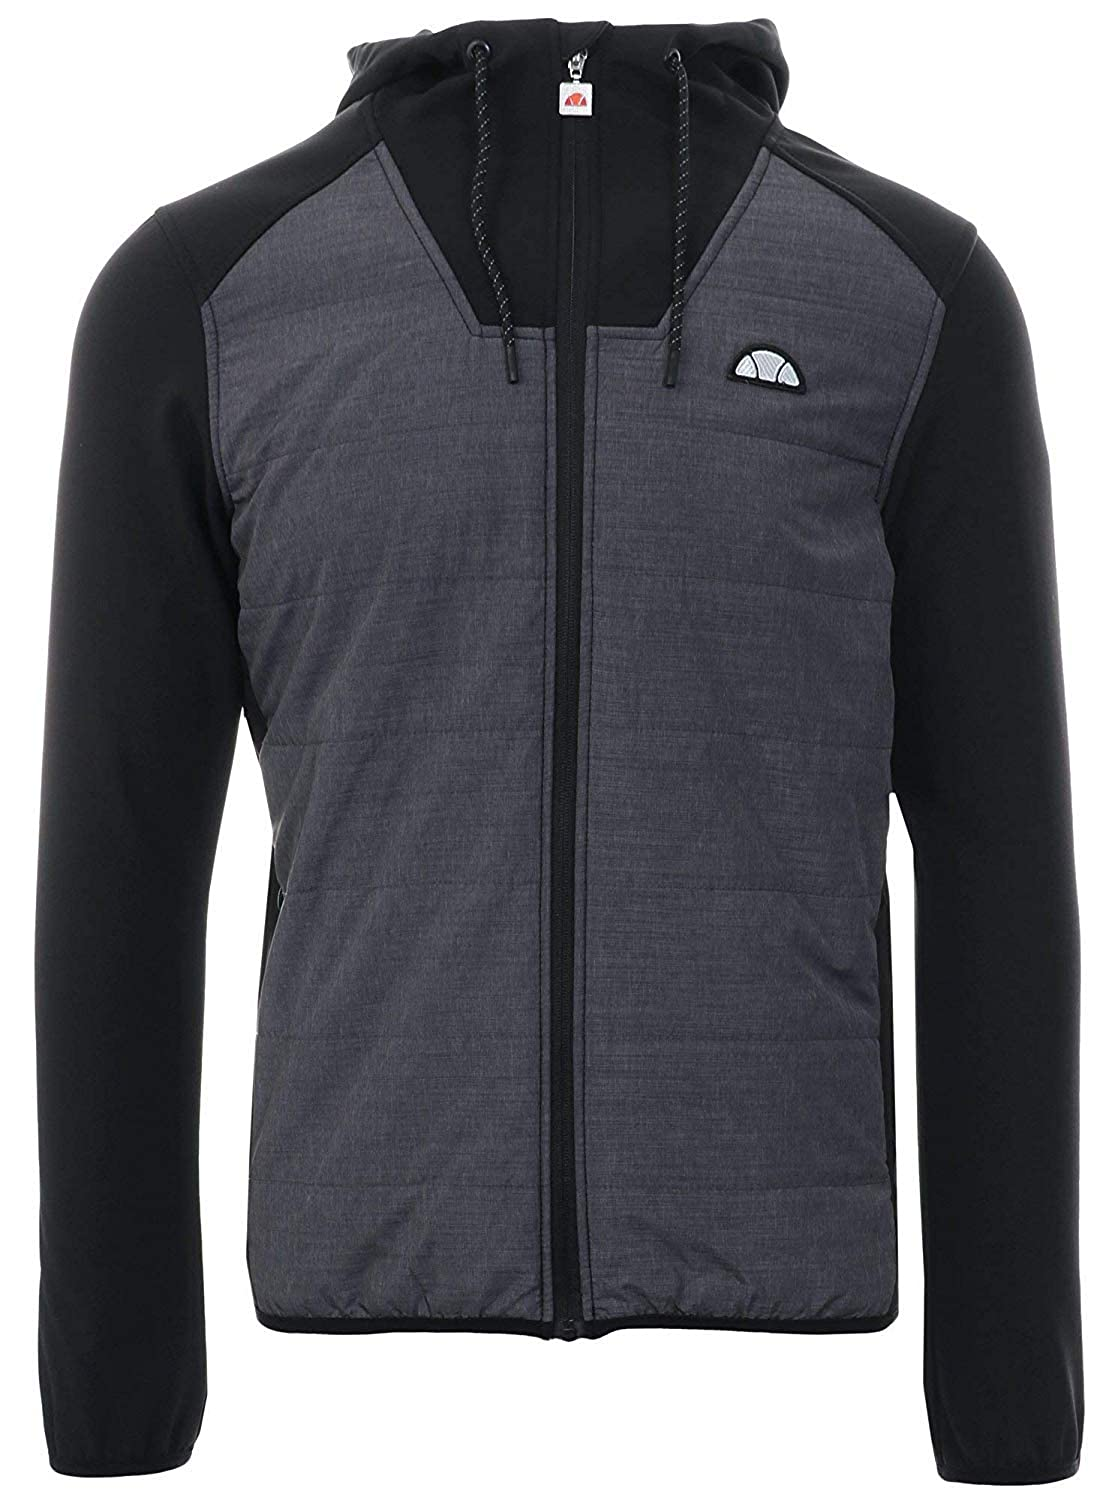 a795367234 ellesse Mens Grey Staggio Hooded Top: Amazon.co.uk: Clothing